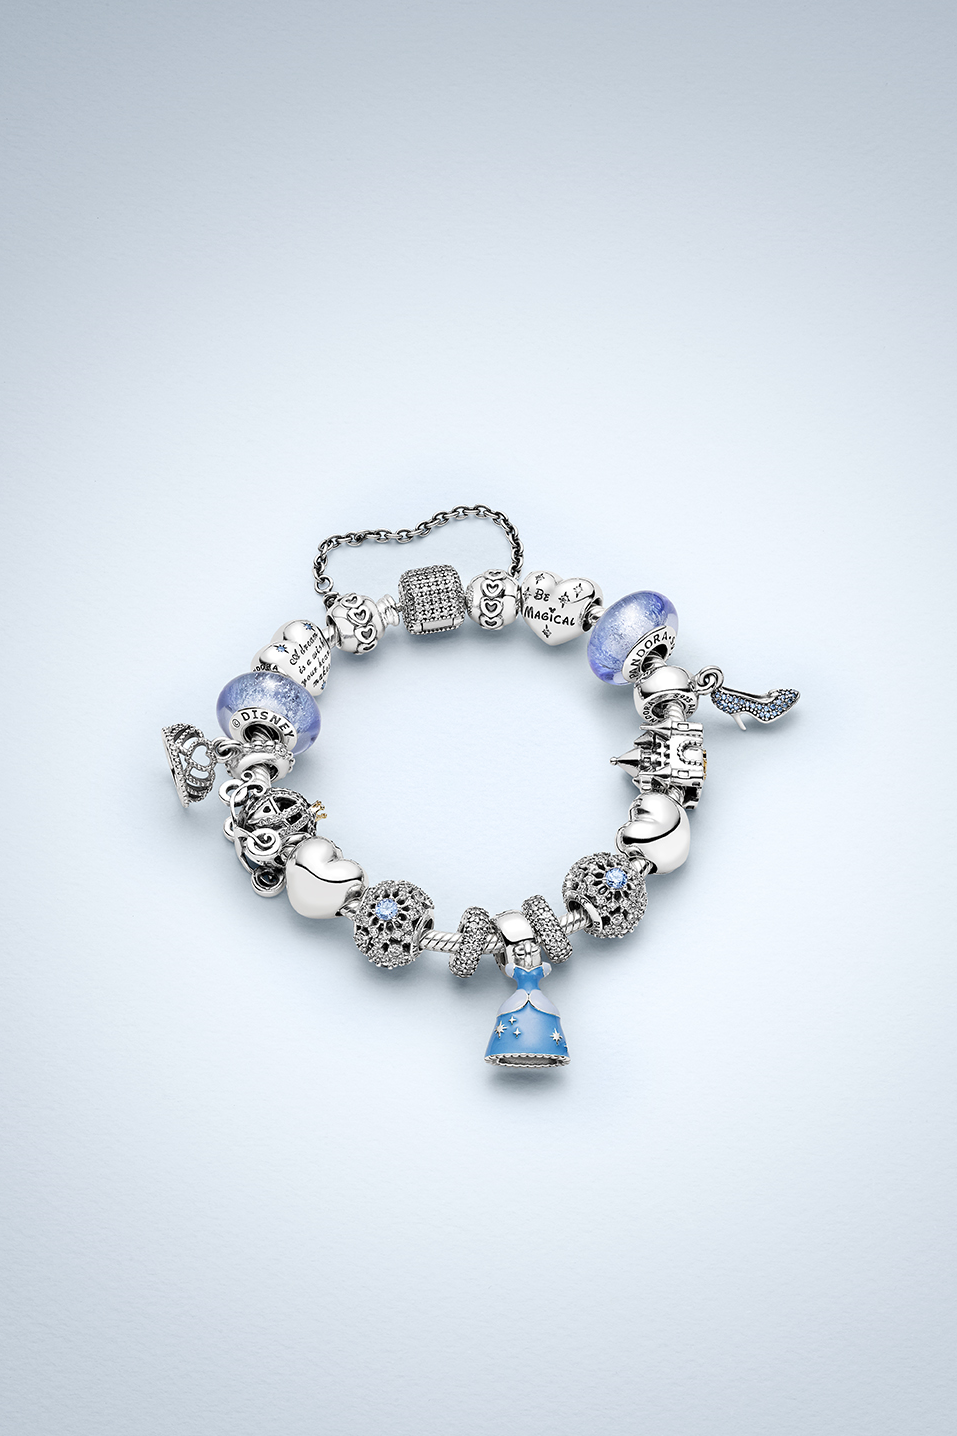 Design Your Own Hily Ever After Fairy Tale Bracelet With Pandora S Cinderella Charms Pandovesdisney